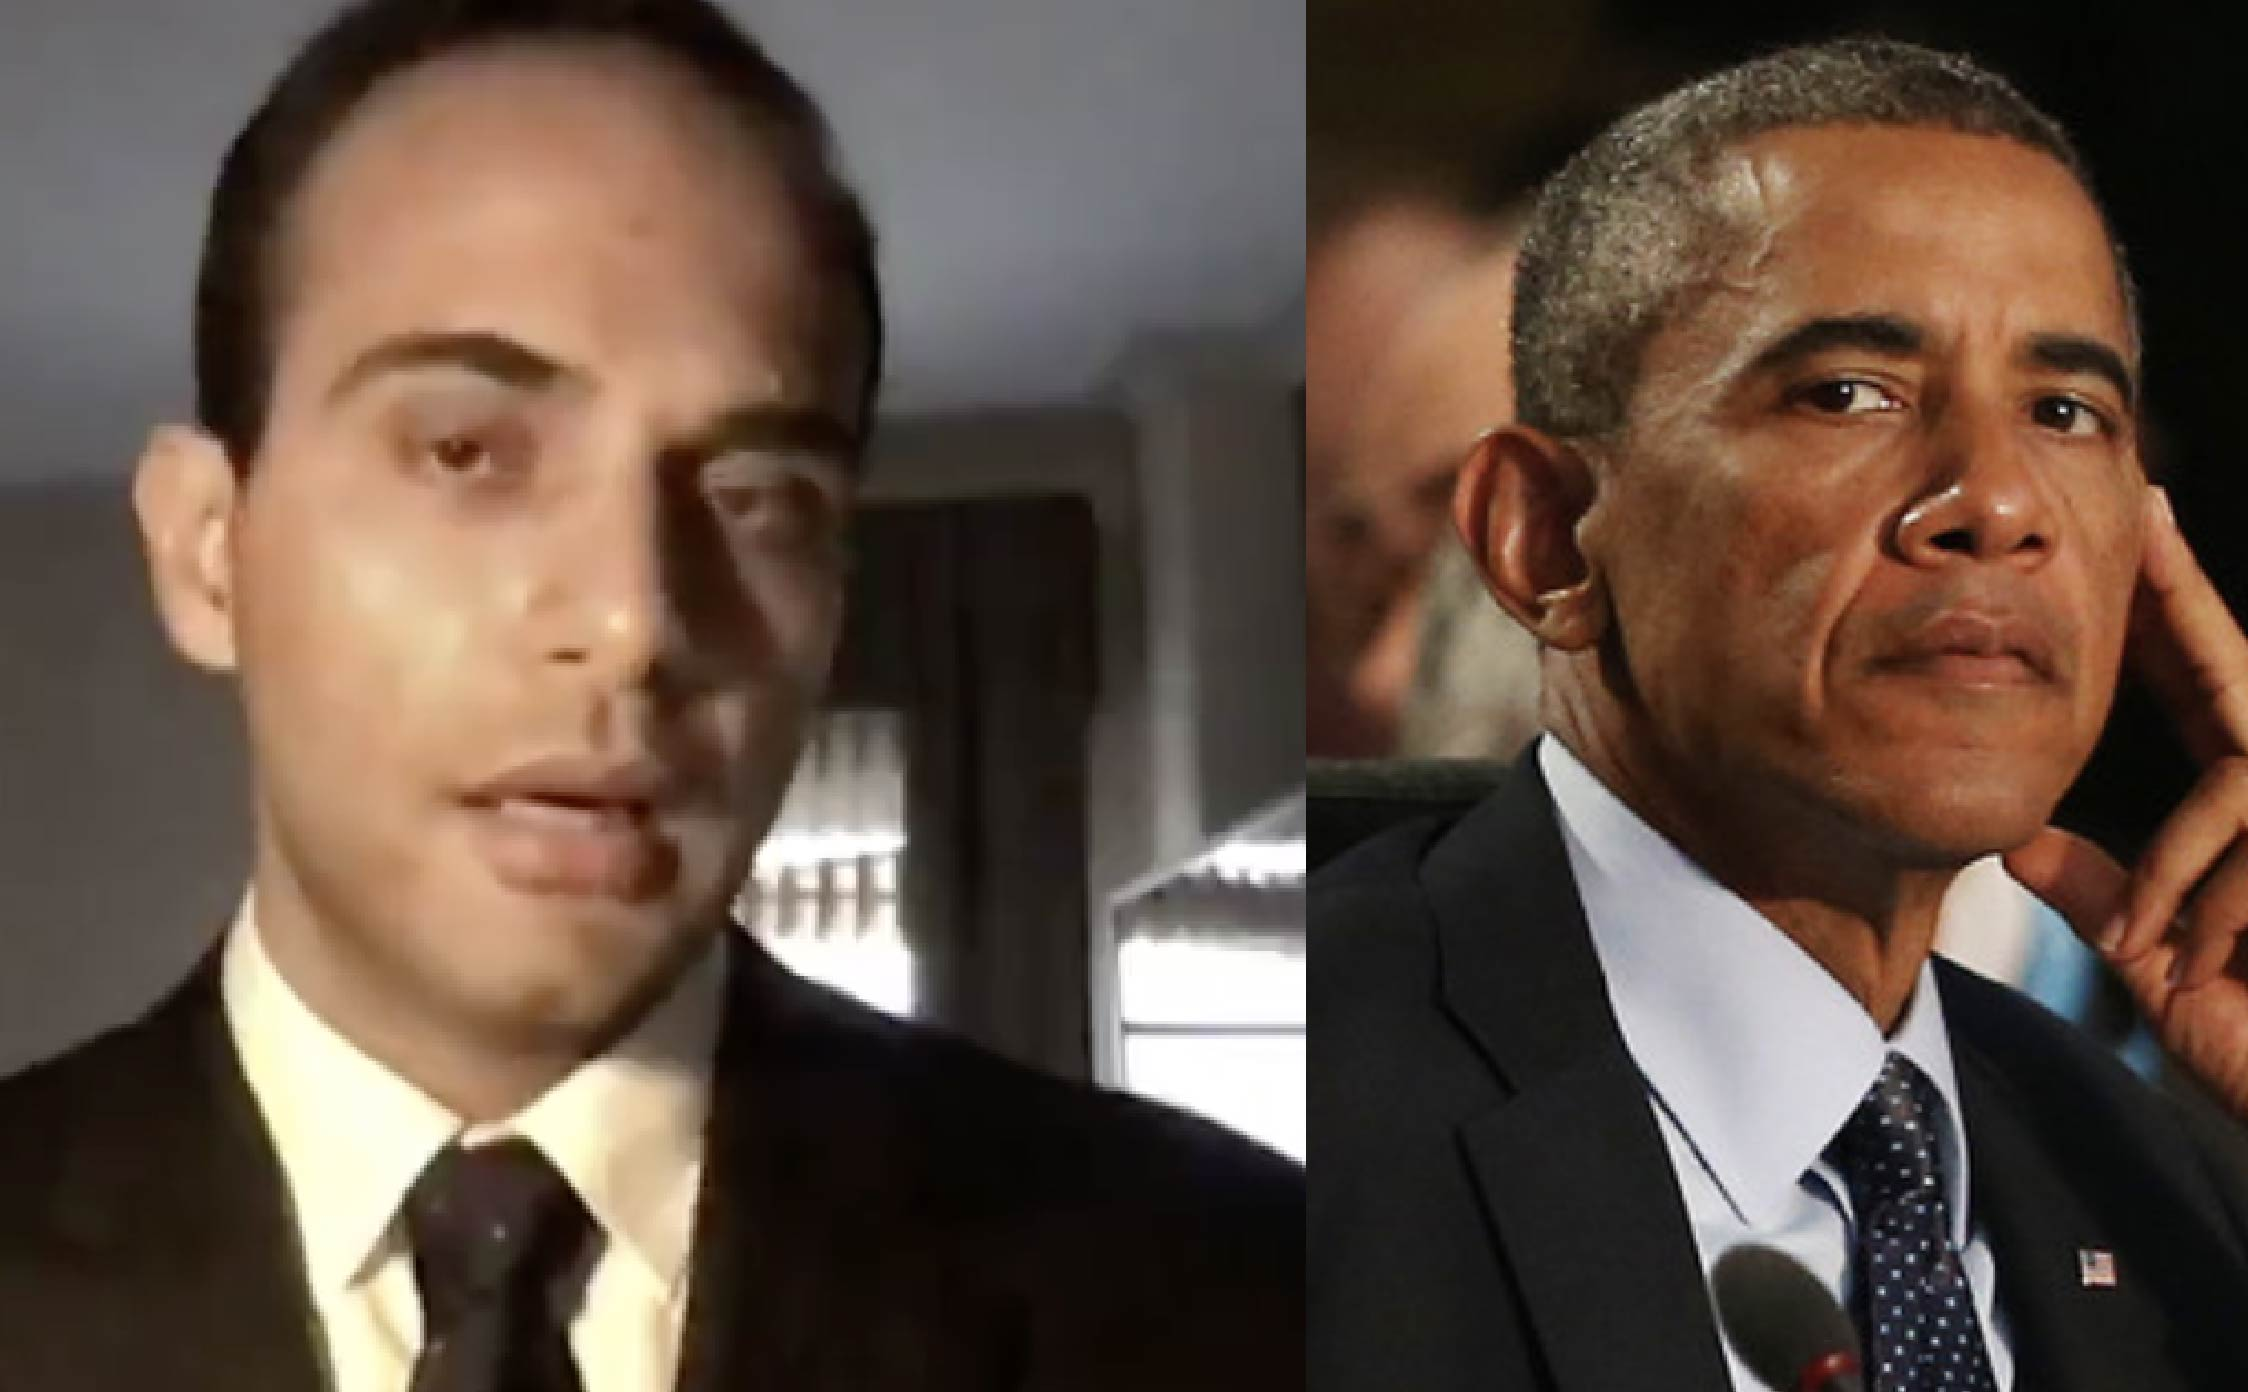 [VIDEO] George Papadopoulos Thinks Today's The Day Obama Will Finally Get What's Coming to Him